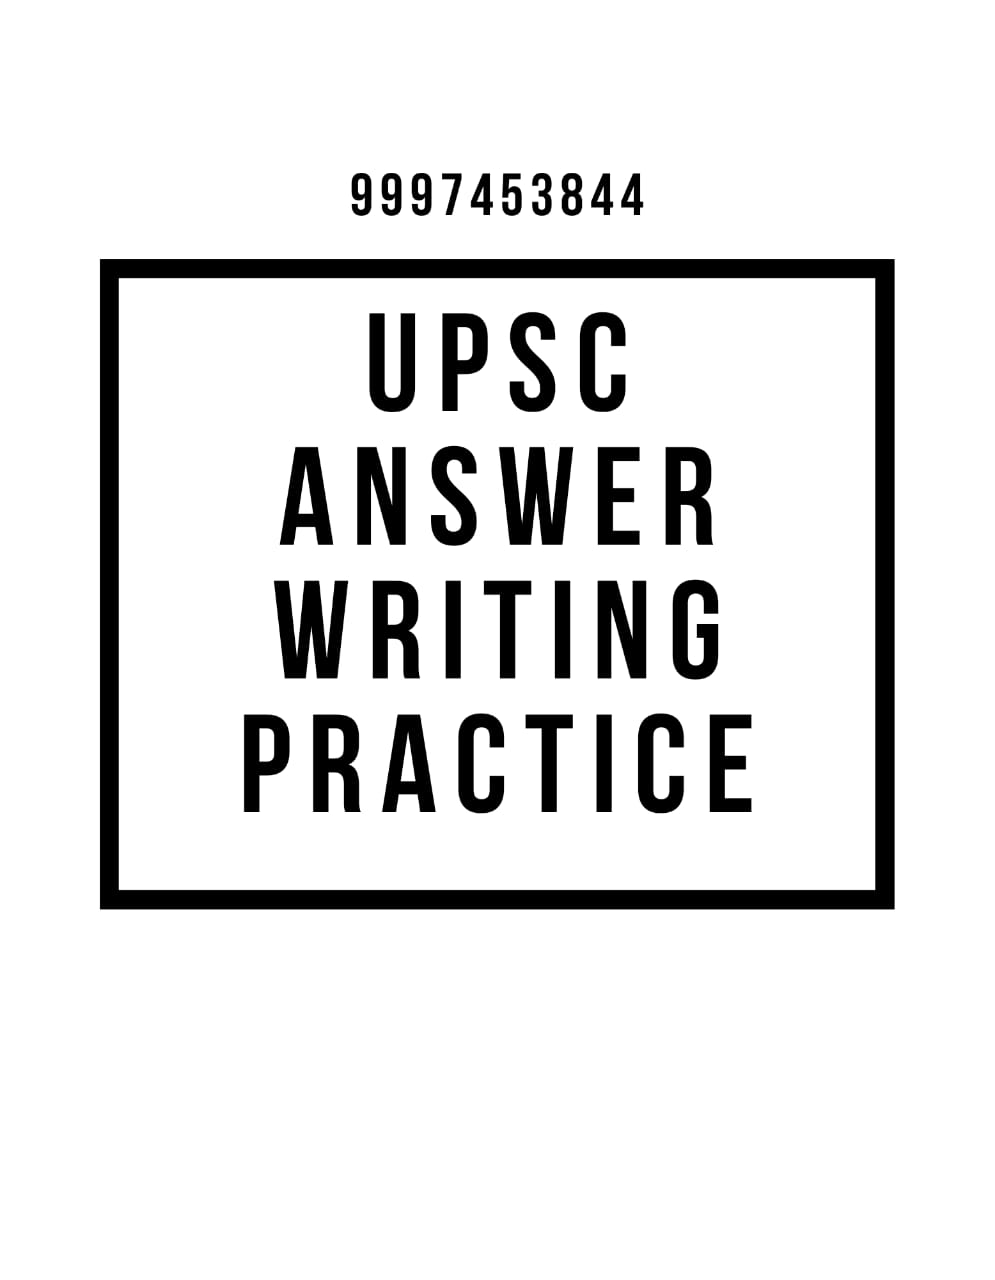 UPSC answer writing